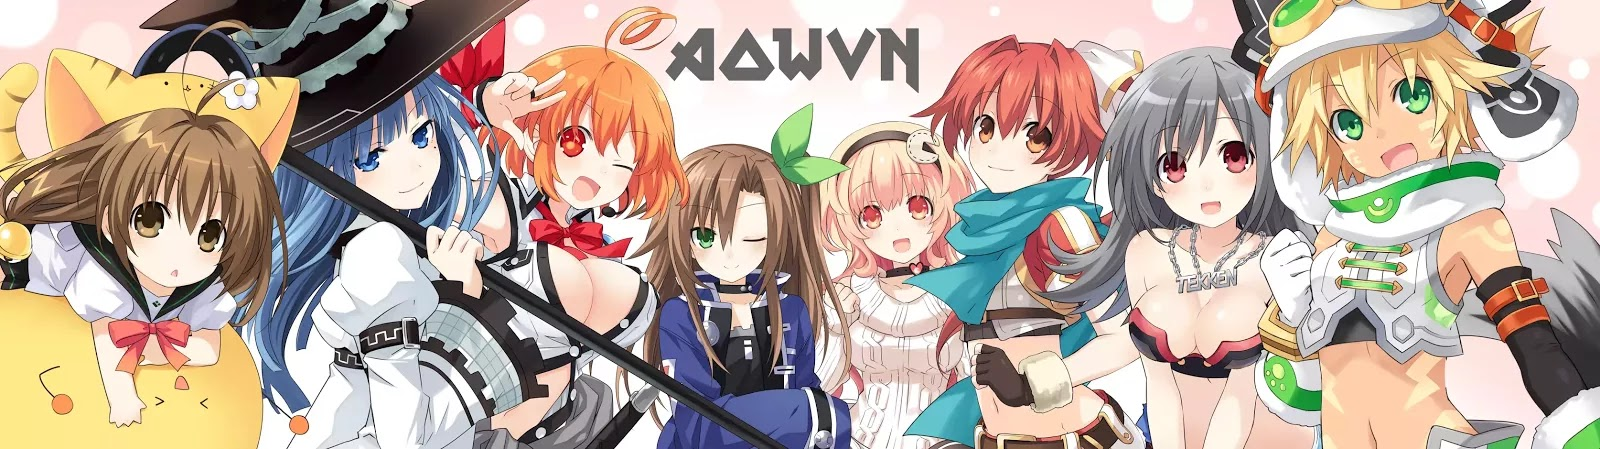 AowVN - [ JRPG ] Hyperdimension Neptunia Re;Birth1 2 3 | Game PC Anime Visual Novel cực hay